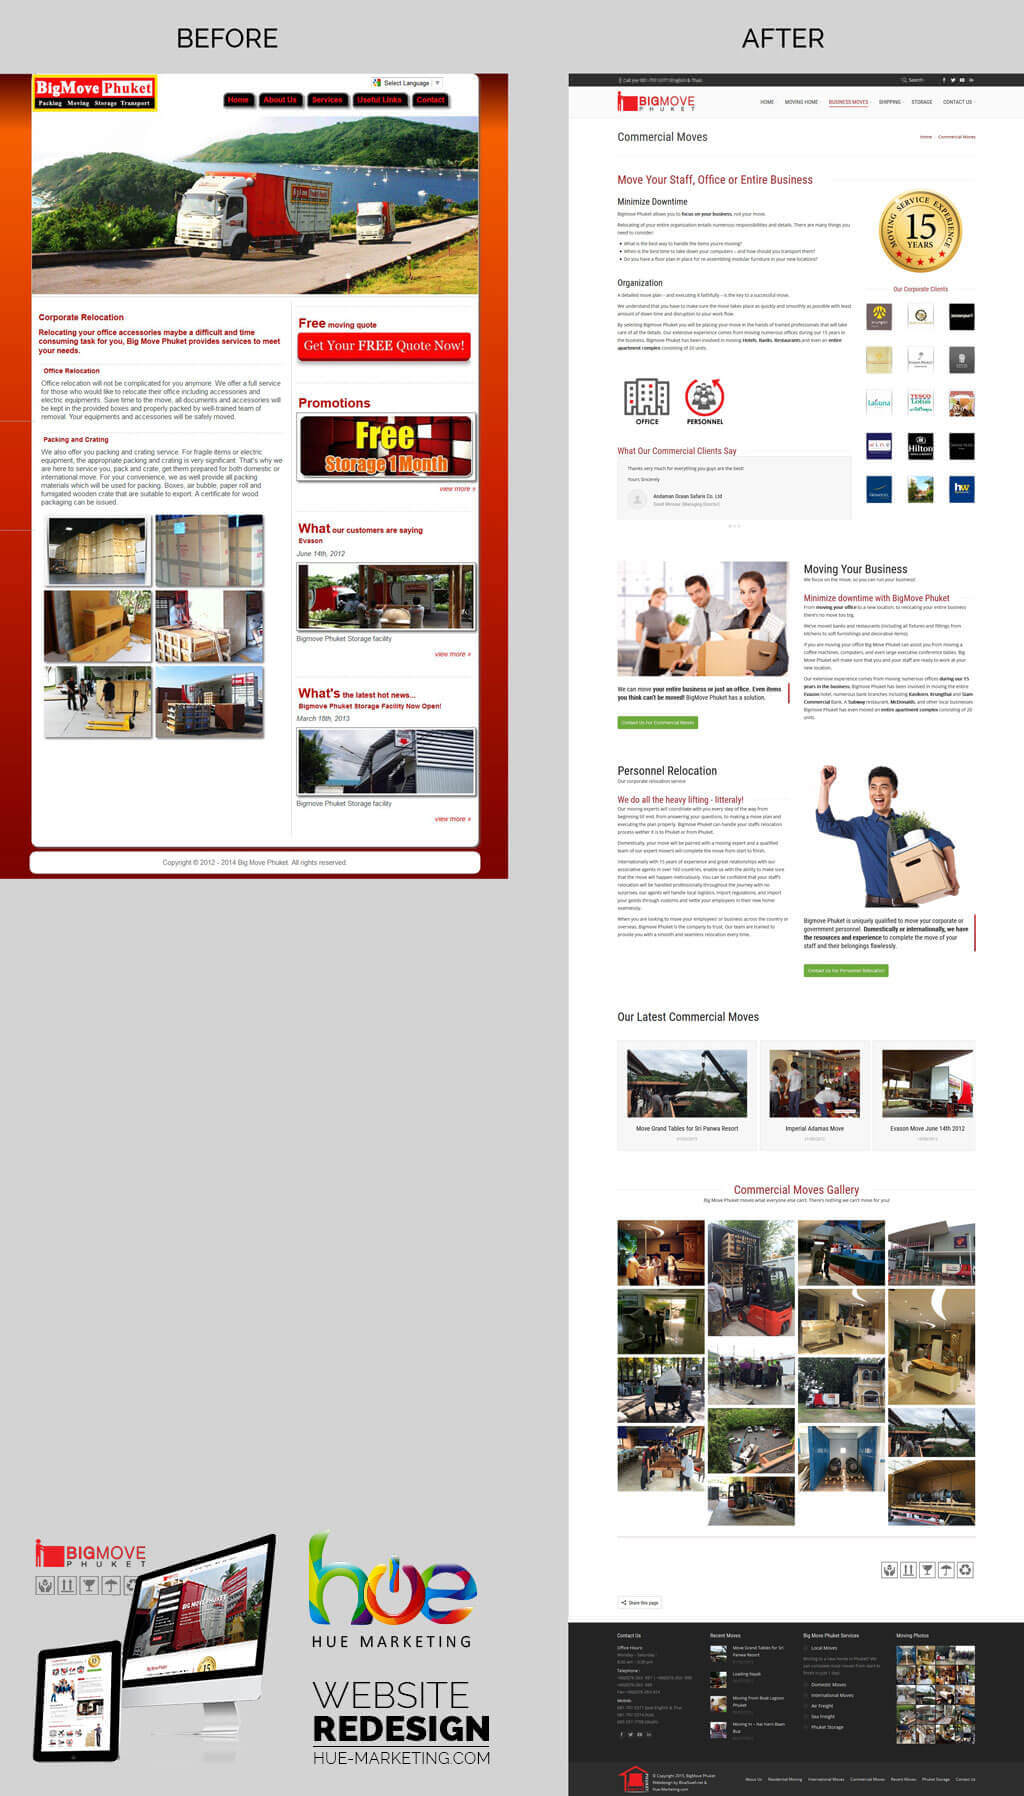 Website Redesign - BigMove Phuket - Corporate Moves